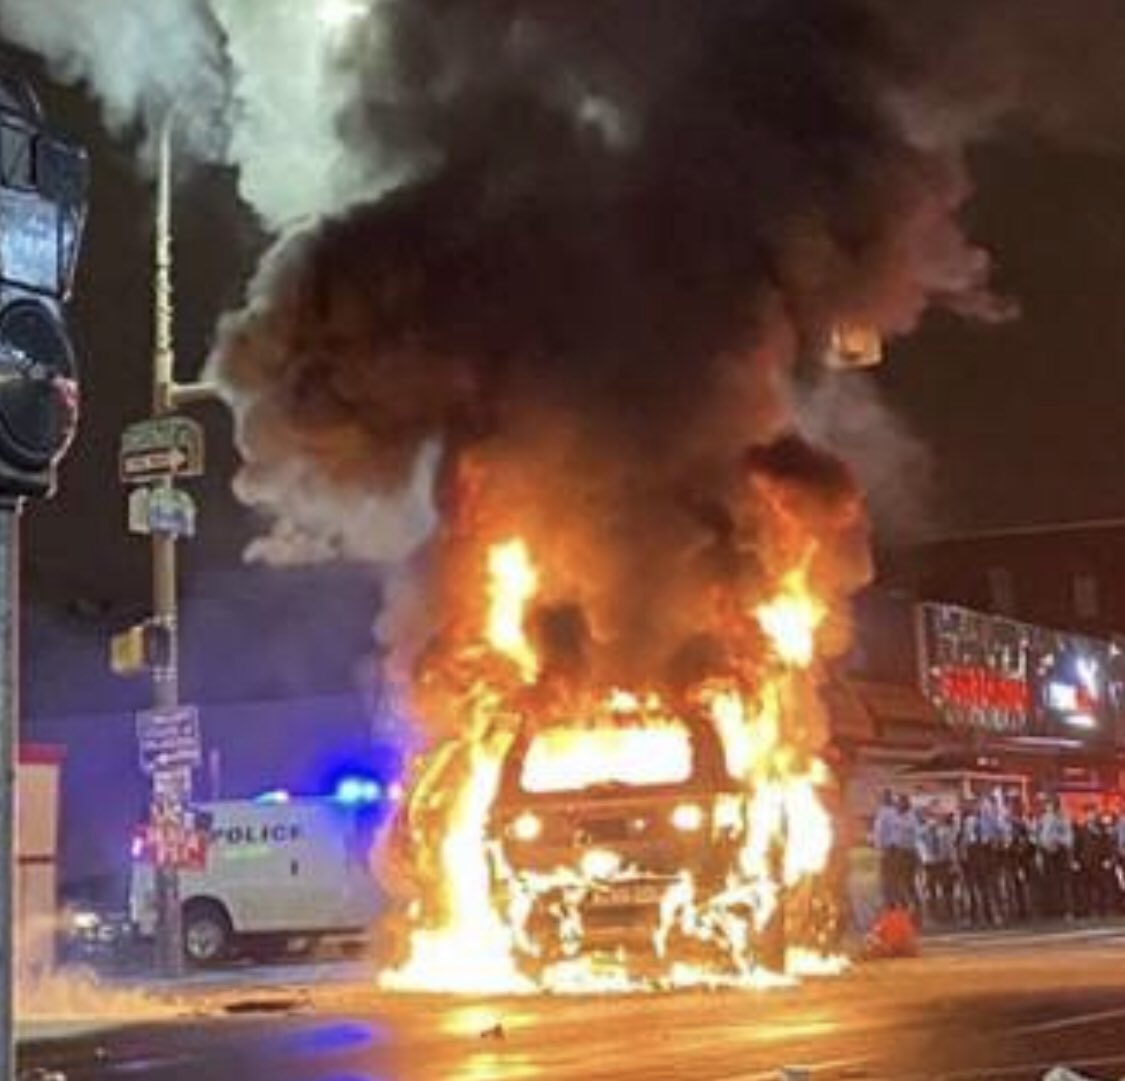 Philadelphia rehearsing for Election Day looting and rioting to intimidate voters. But, hey, it's the Democrat way... https://t.co/4dSYdclIGl